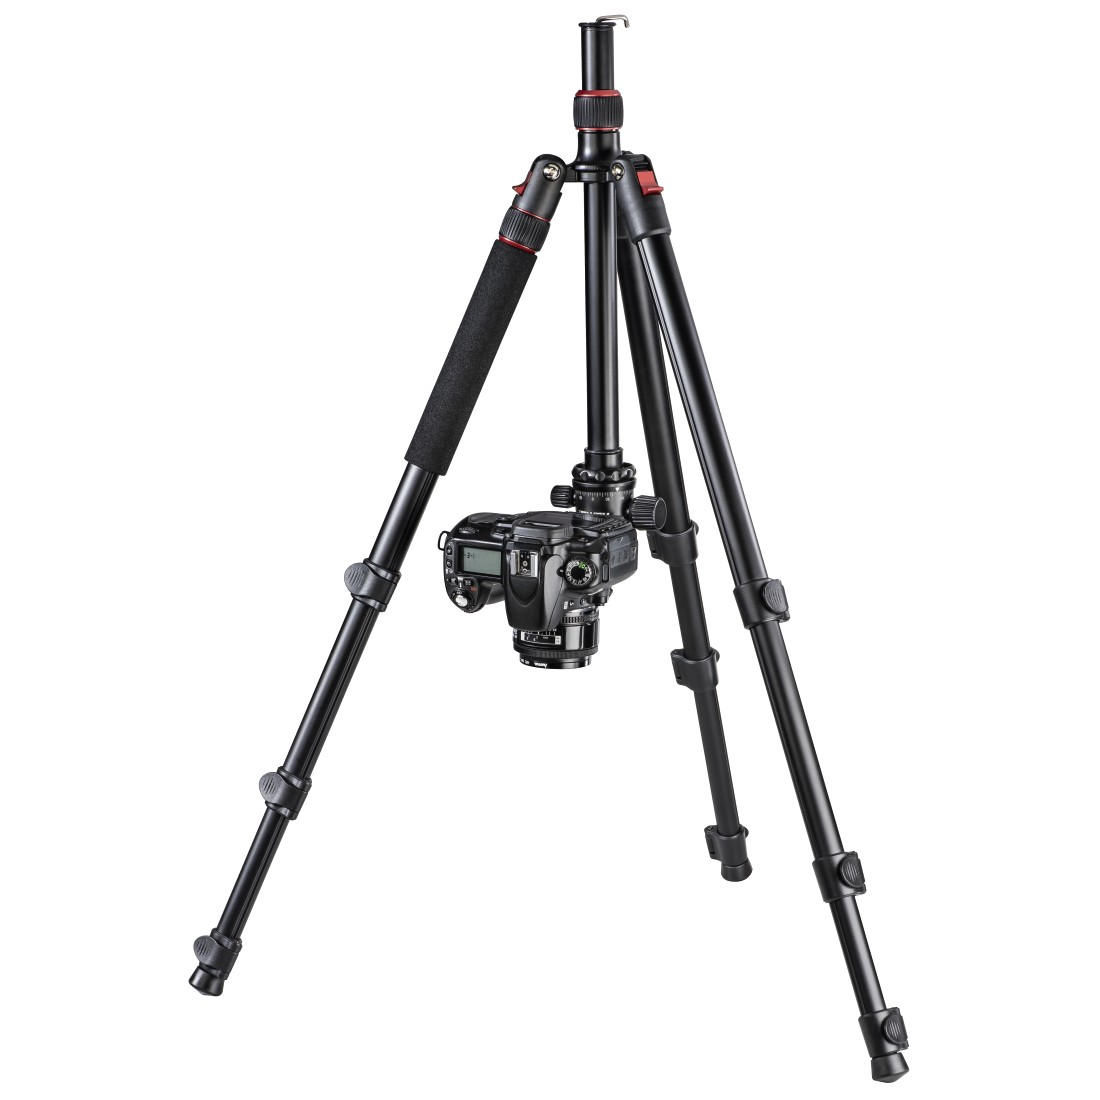 "awx2 High-Res Appliance 2 - Hama, ""TAR Duo"" Tripod, 165 - Ball"